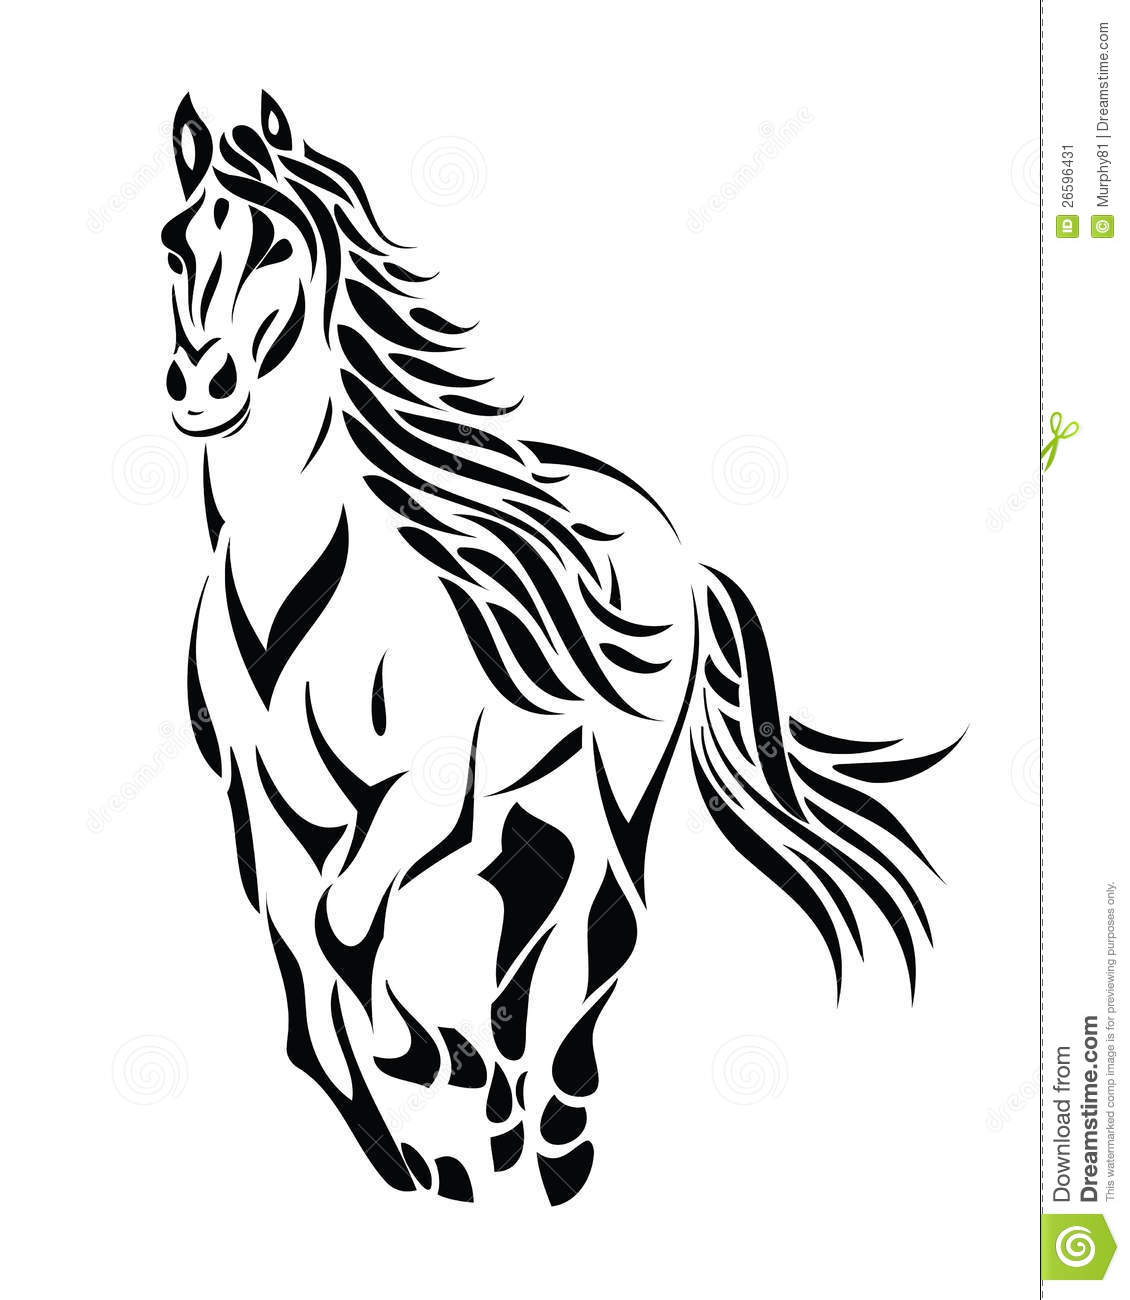 It's just a picture of Wild Tribal Horse Drawing